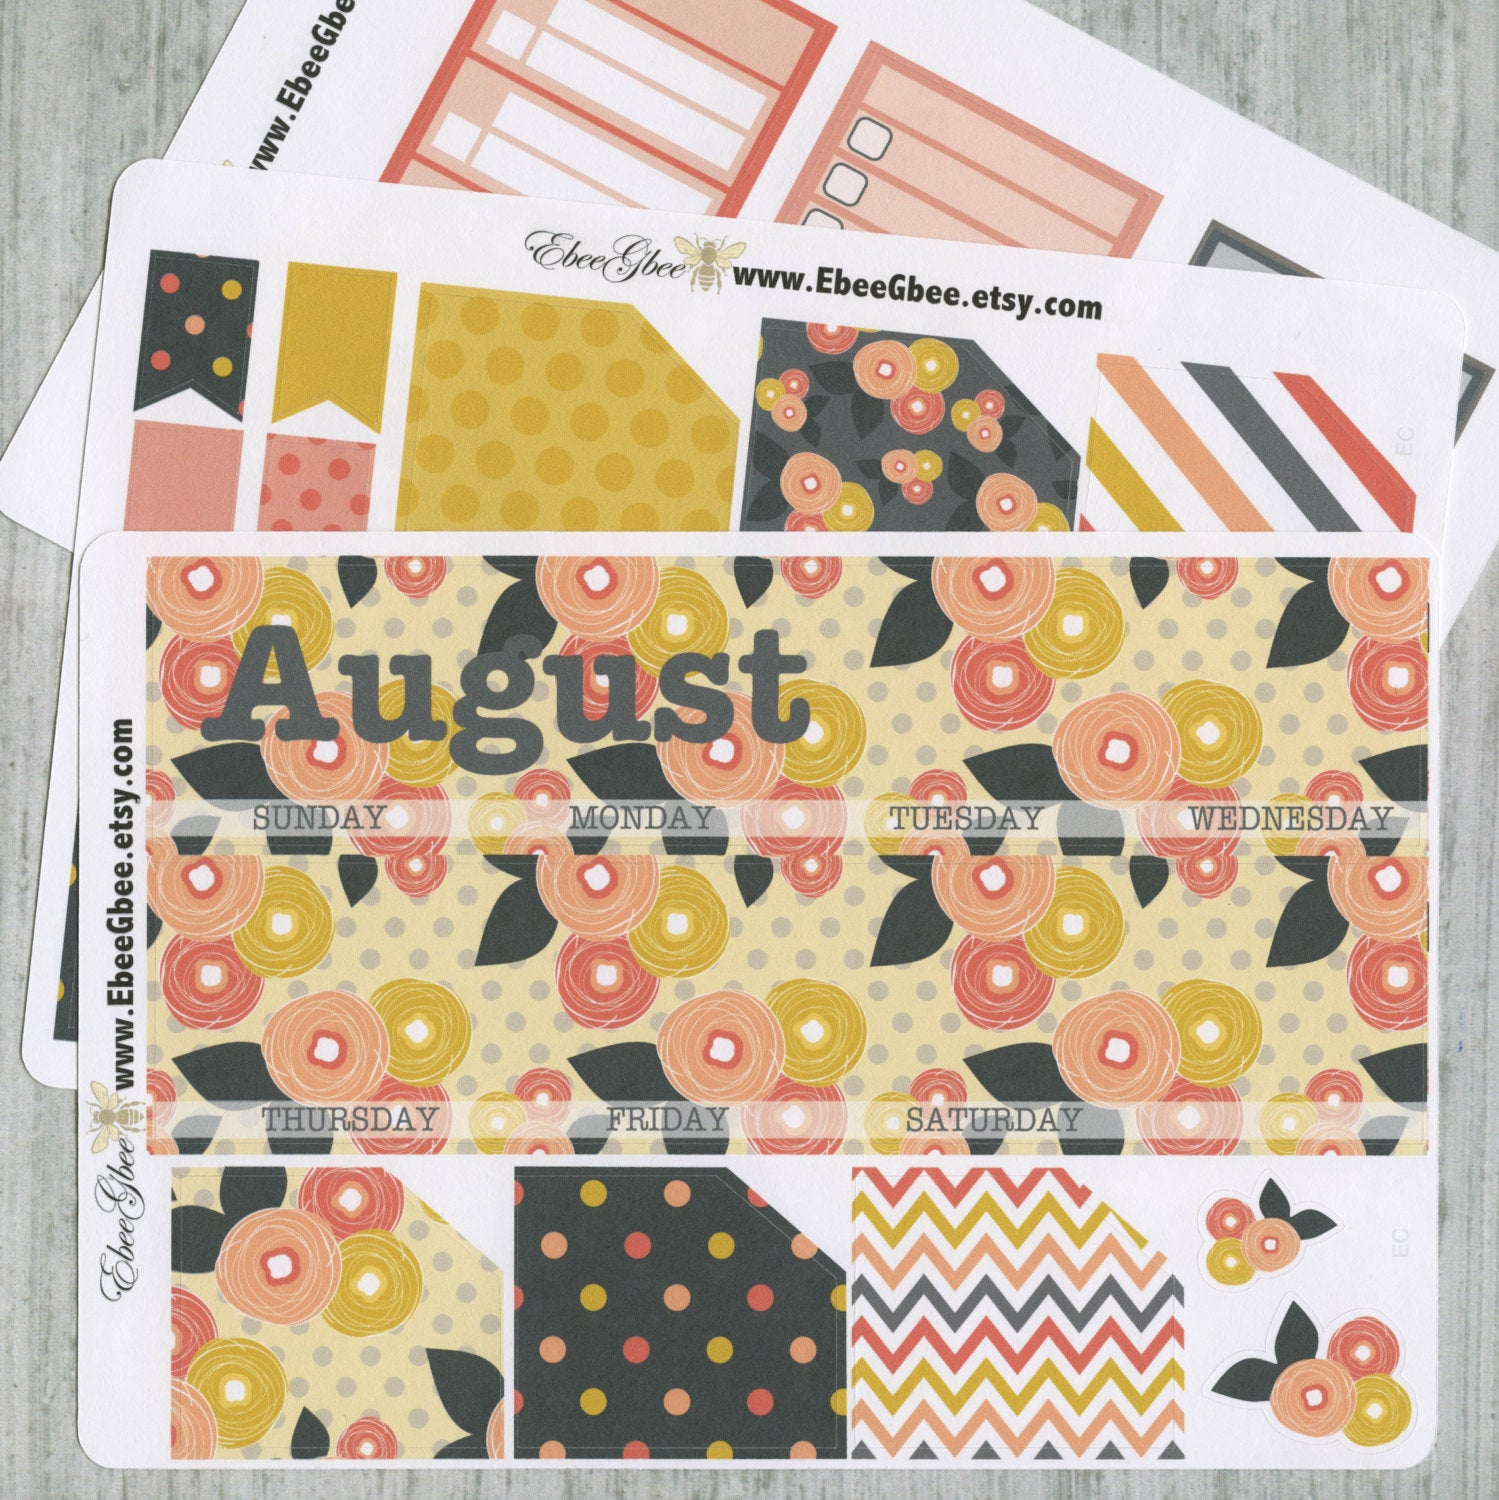 MOD FLORAL MONTHLY Layout Planner Stickers | You Pick Your Month | Gold Storm Peach